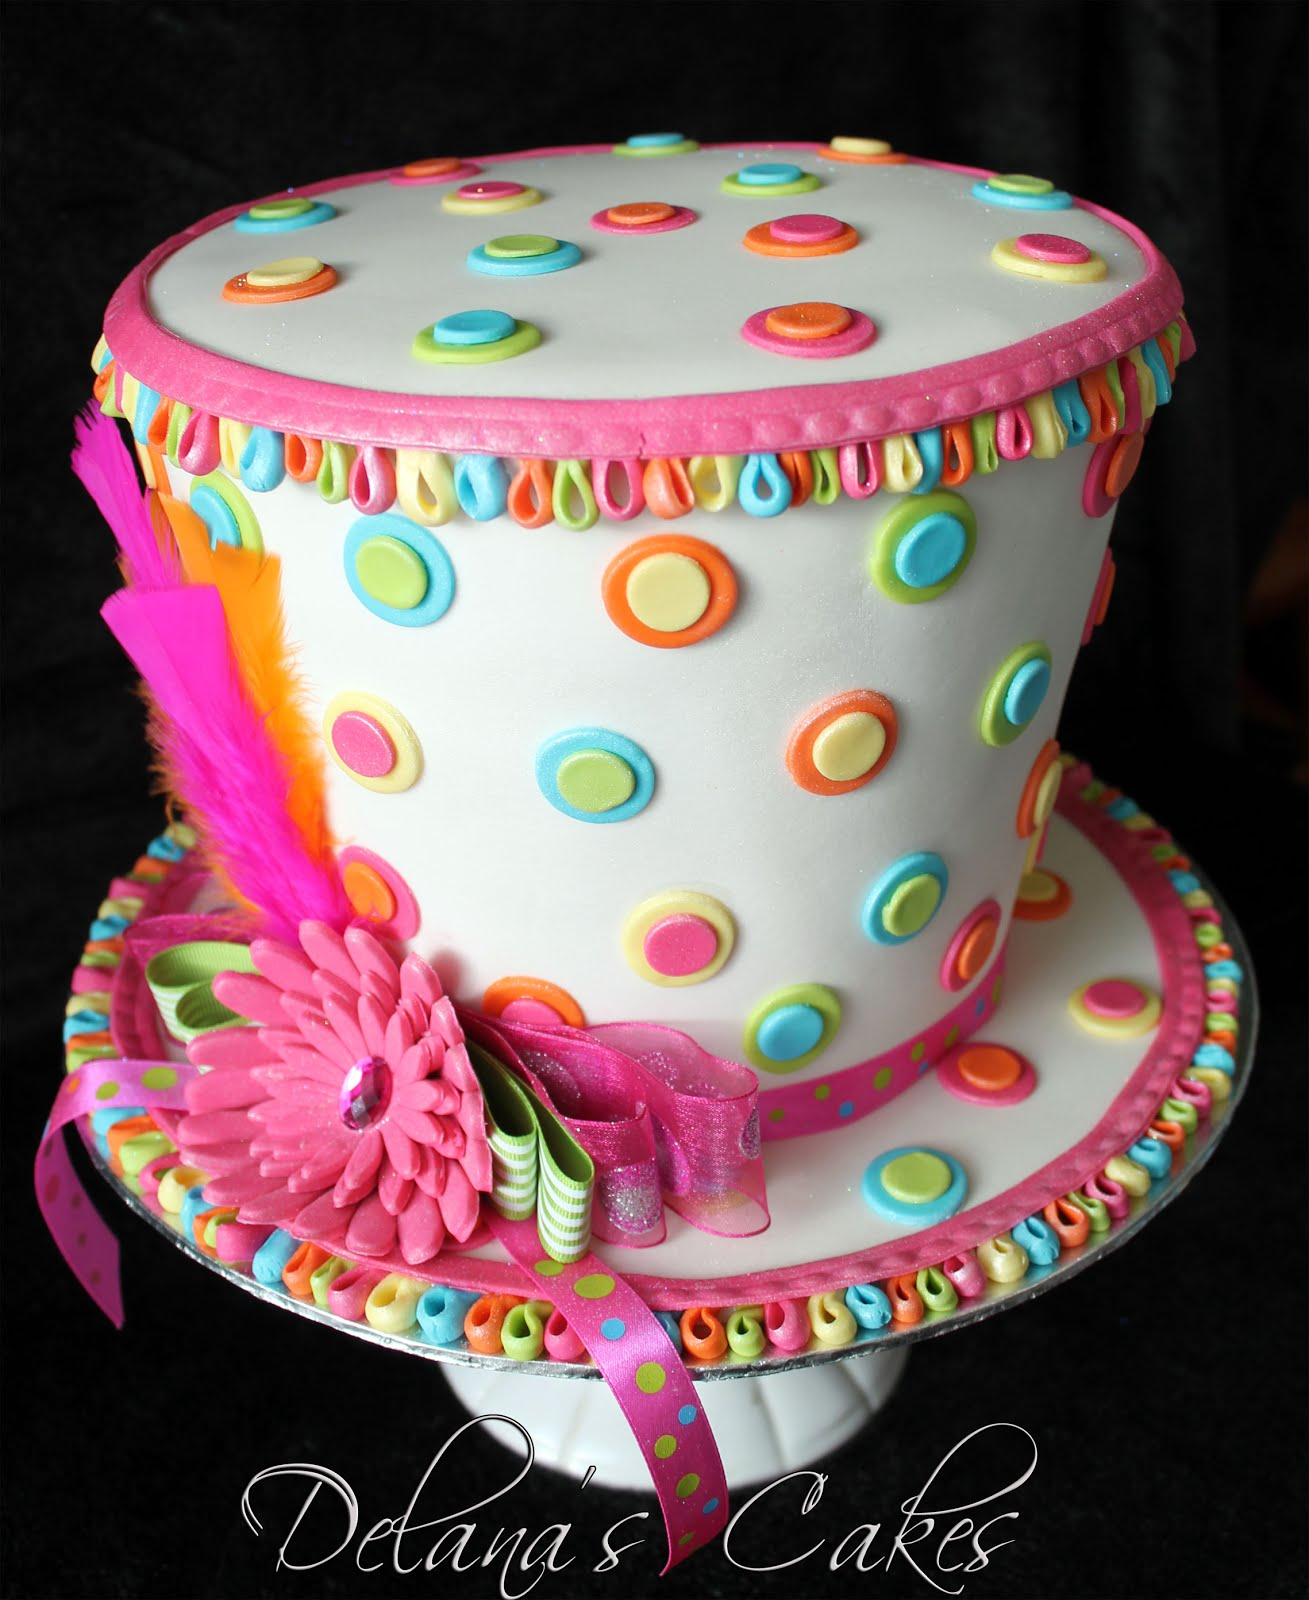 Delanas Cakes Mad Hatters Cake